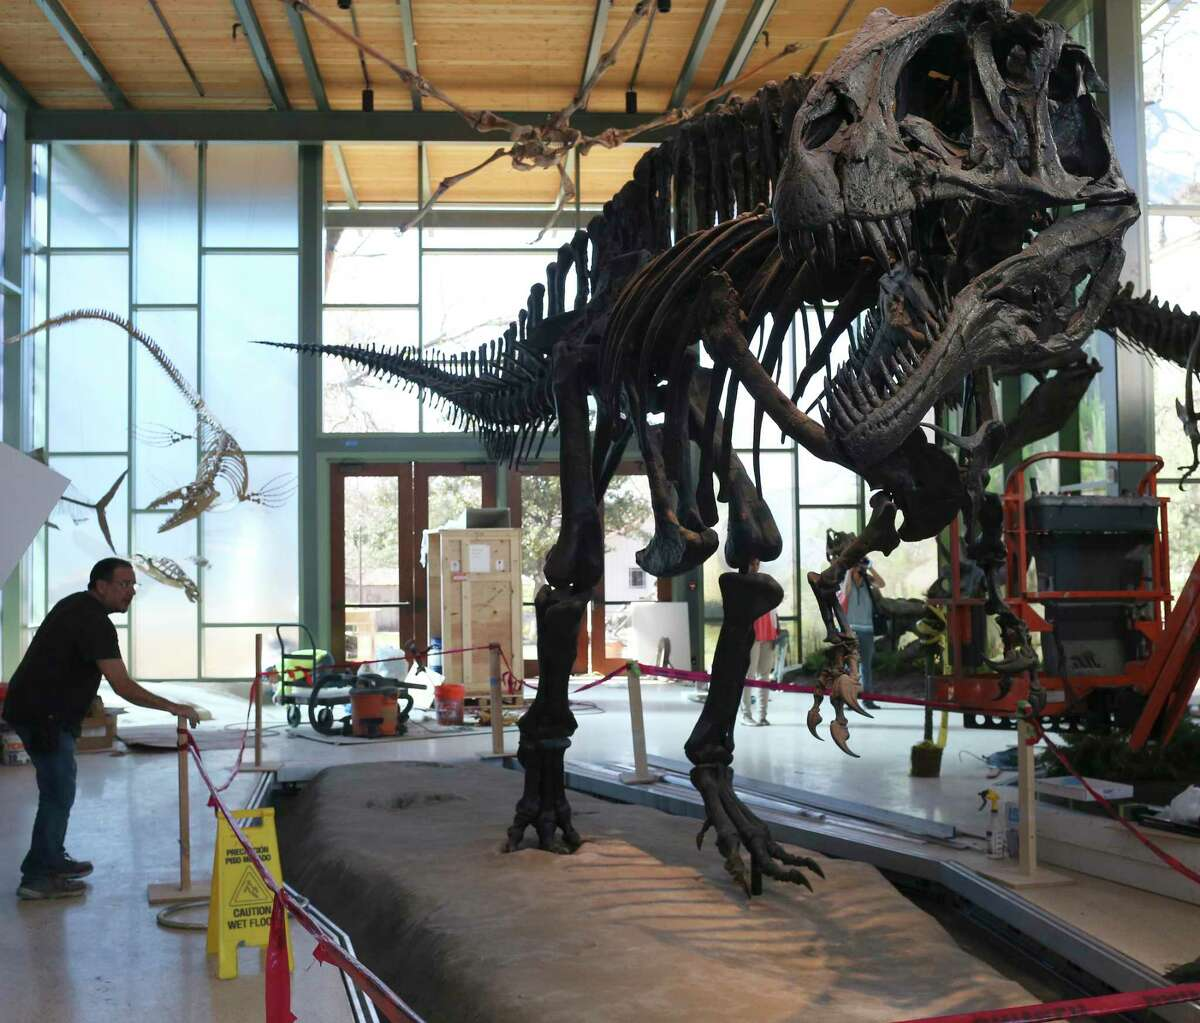 Workers remove tape from around the Acrocanthosaurus exhibit at the Witte Museum in 2017. Footprints of the dinosaur were found in Government Canyon State Natural Area.